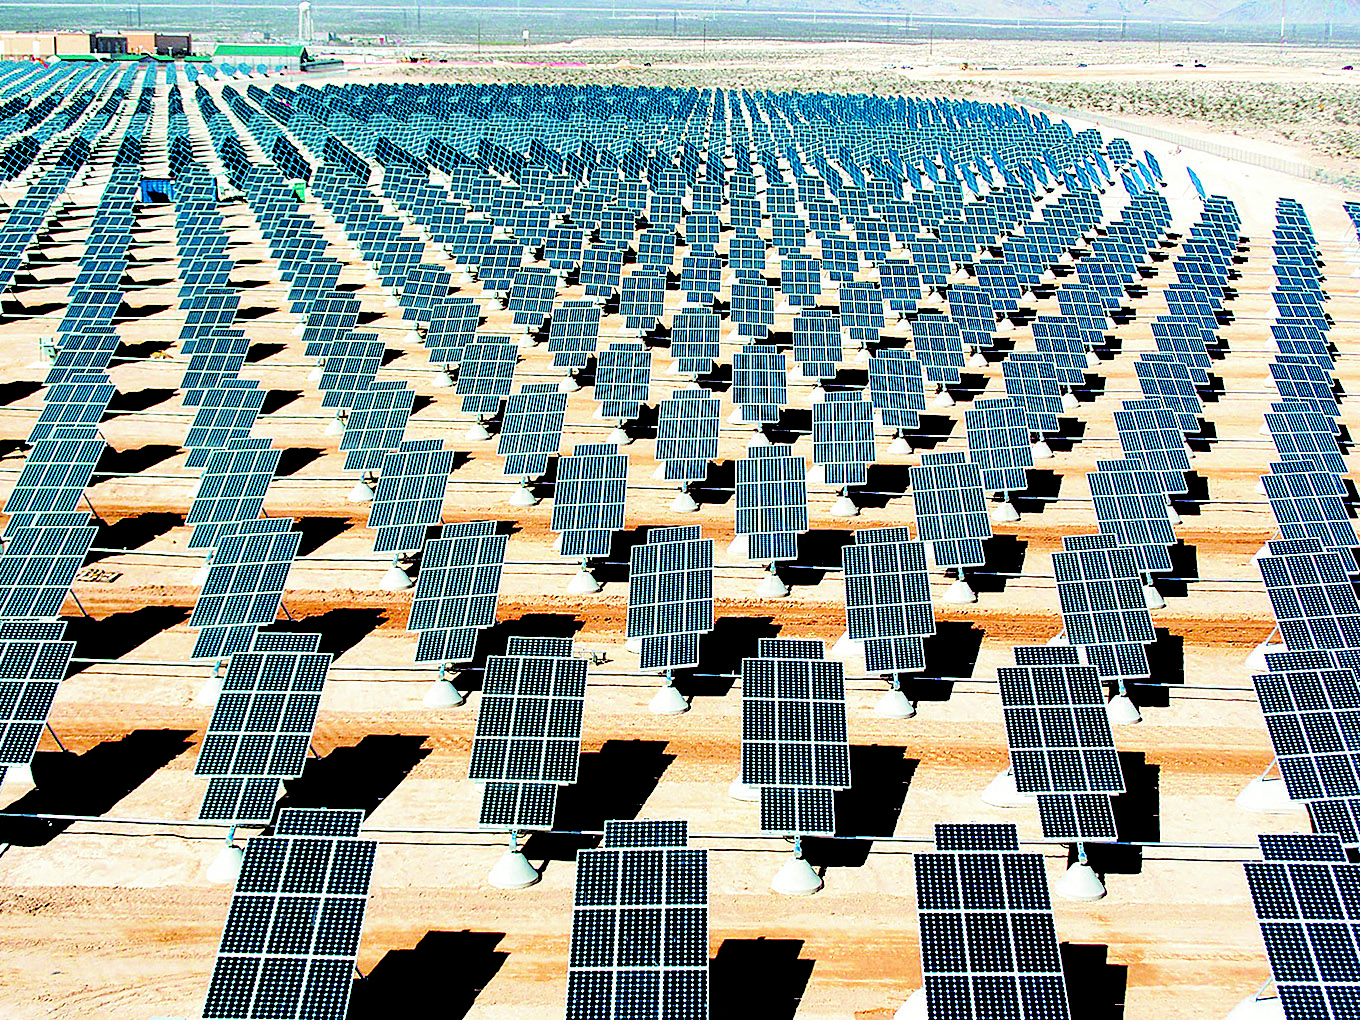 Nellis Solar Power Plant located at Nellis Air Force Base, northeast of Las Vegas. The power plant occupies 140 acres, contains about 70,000 solar panels and generates 14 megawatts of solar power for the base. Photo: Wikimedia Commons